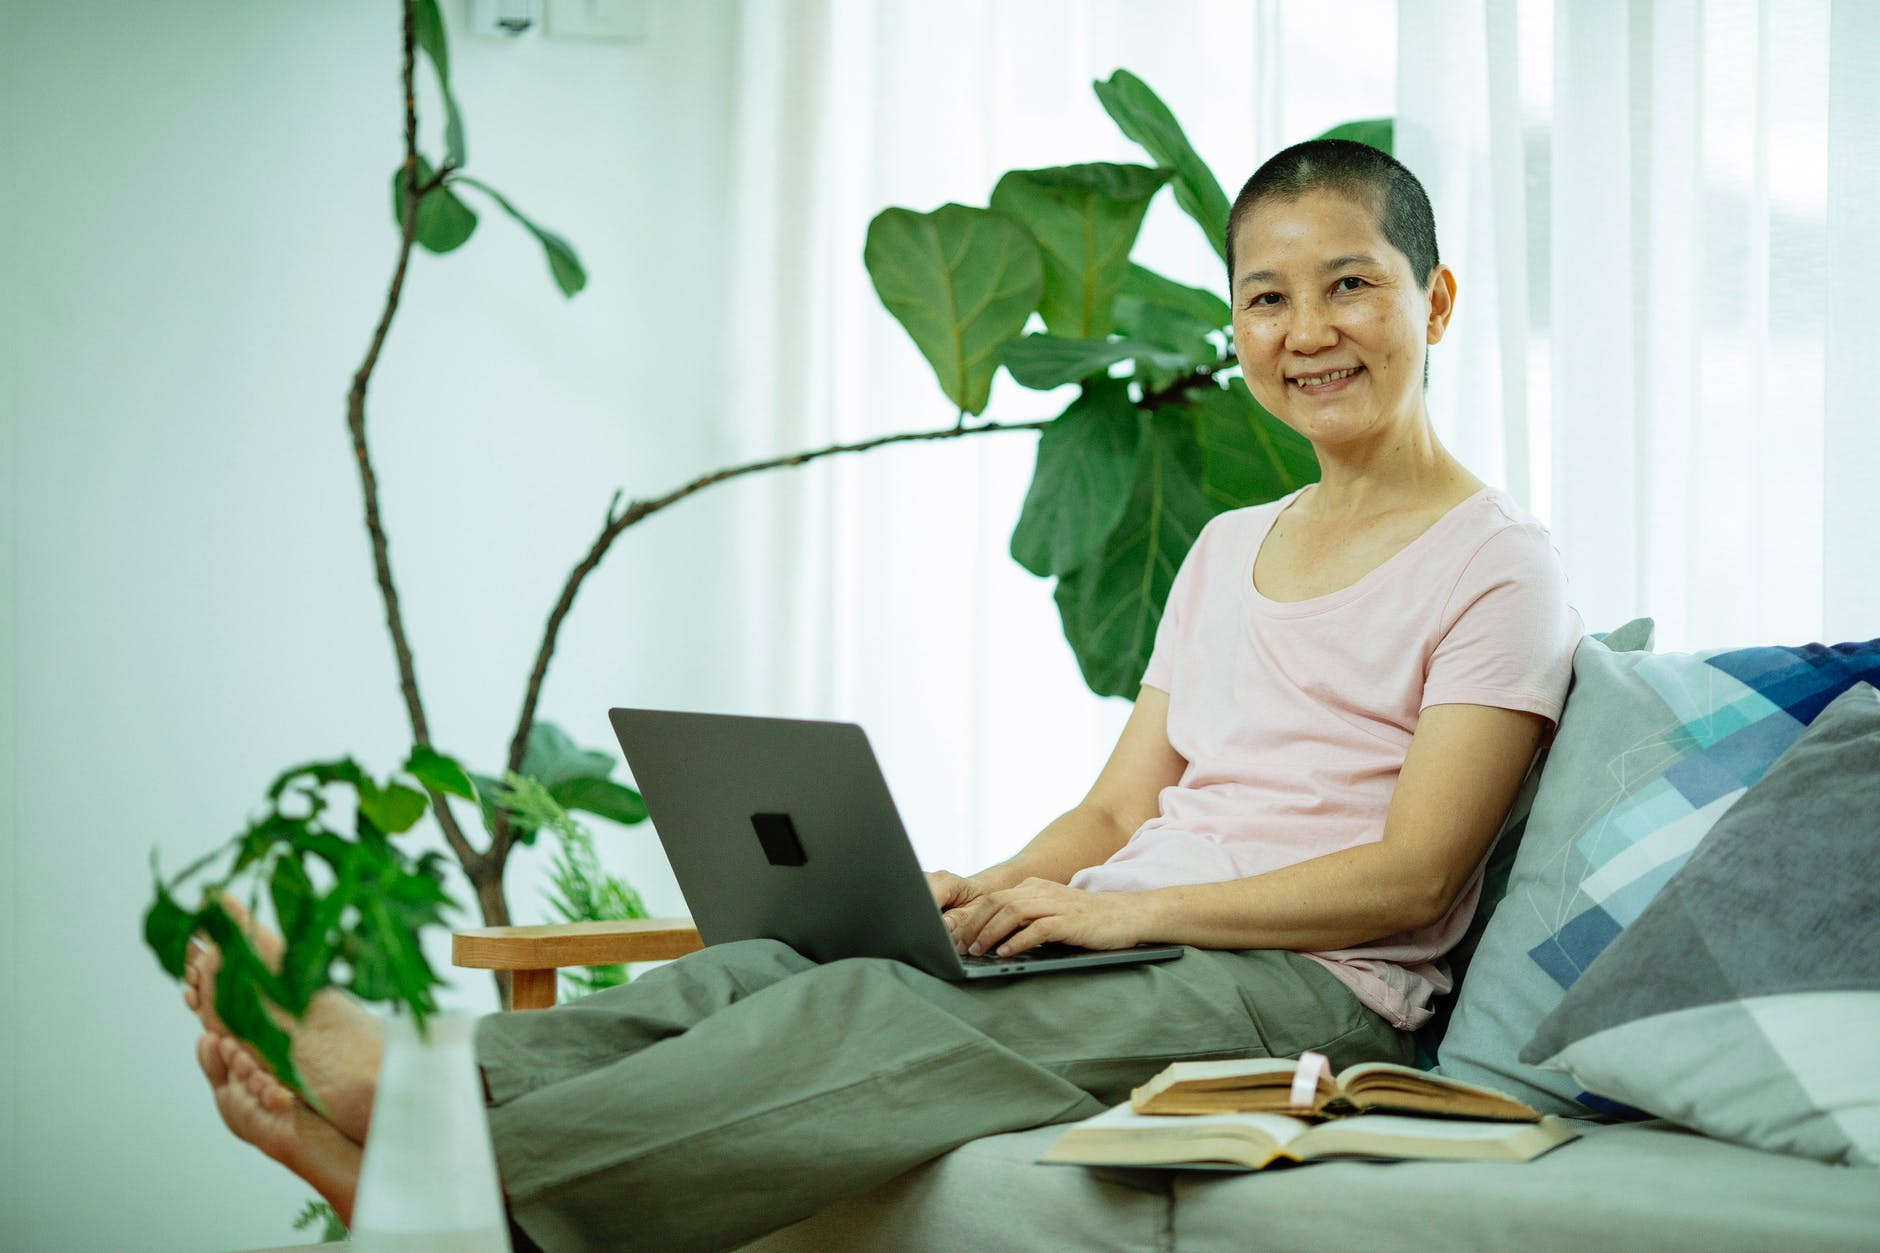 happy asian lady using netbook on couch in living room